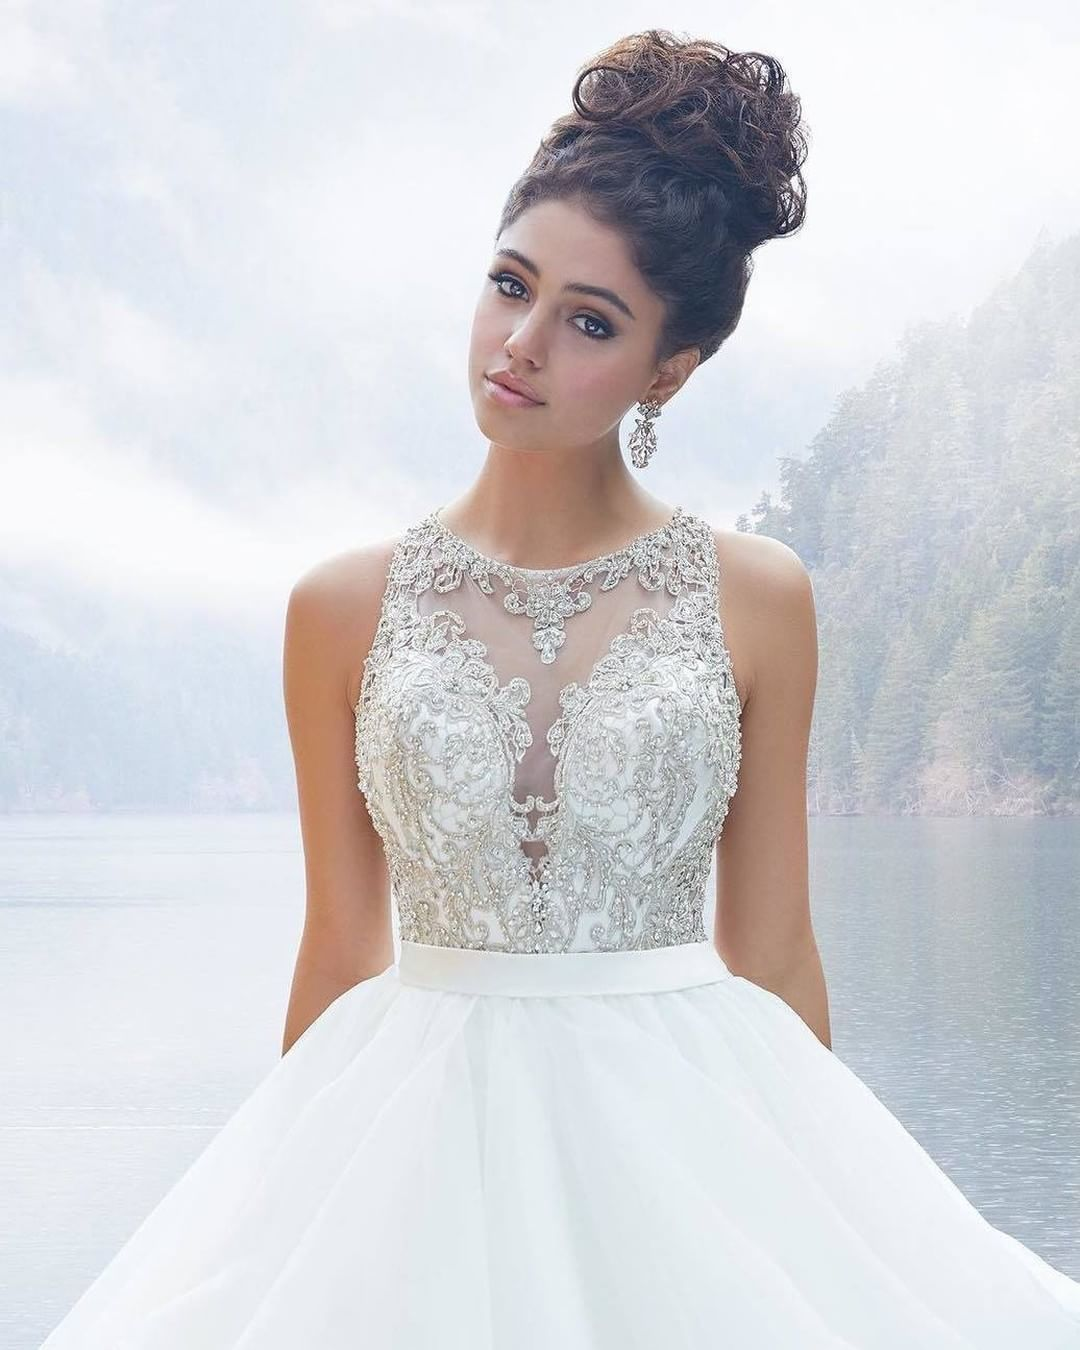 Looking for a dreamy gown? This stunner might be the